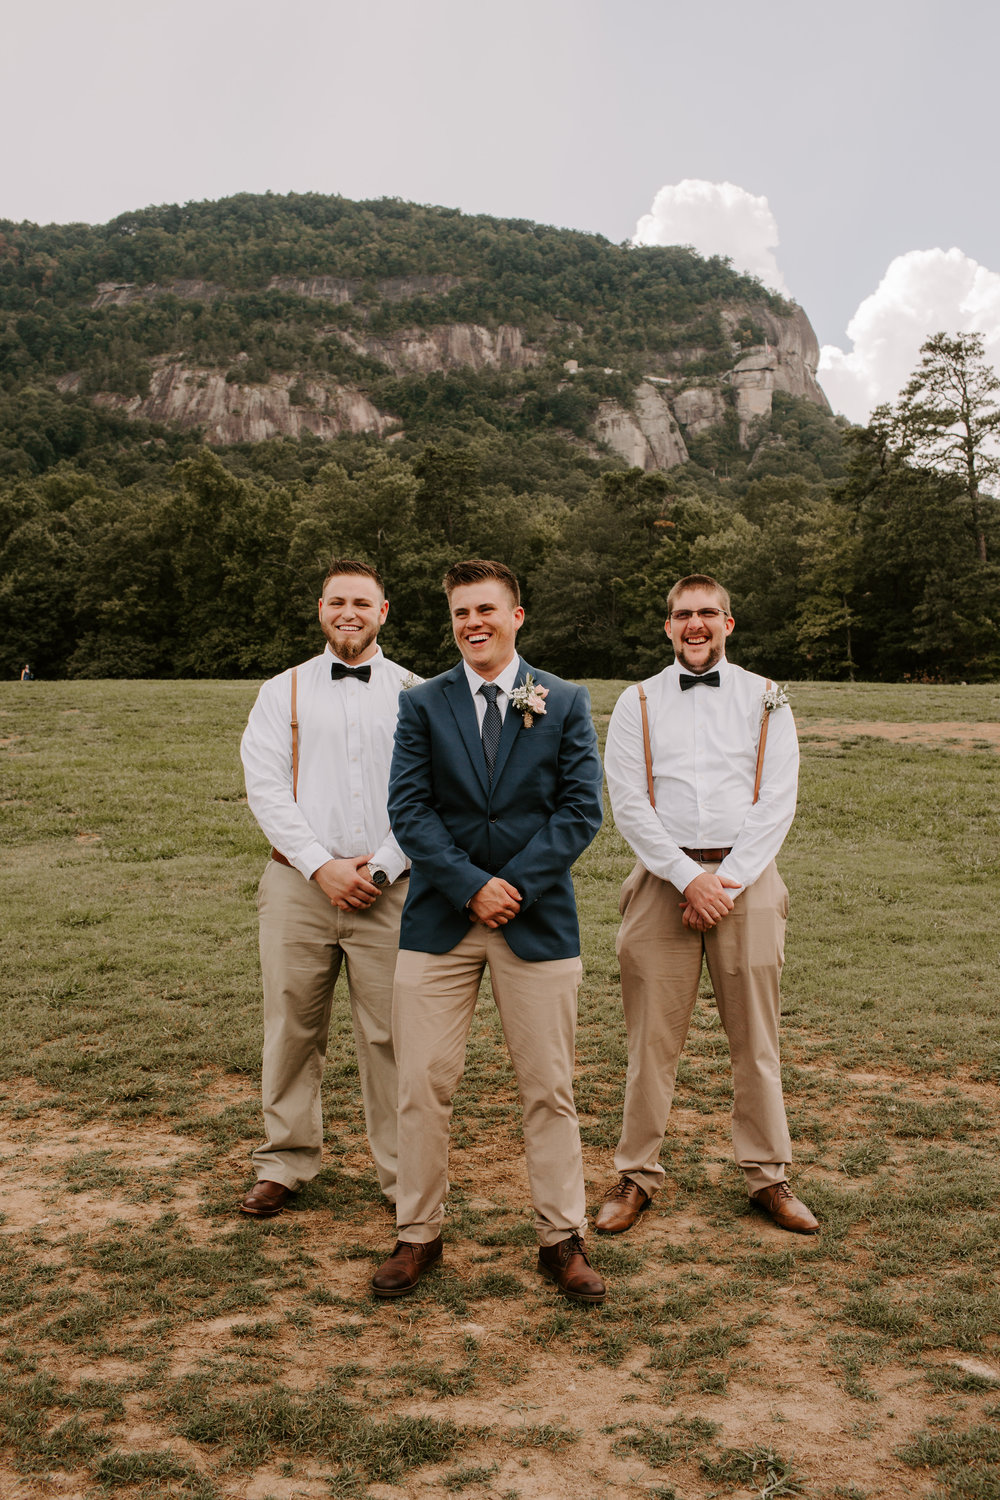 Miranda&braedon_ashevilleelopement (61 of 101).jpg